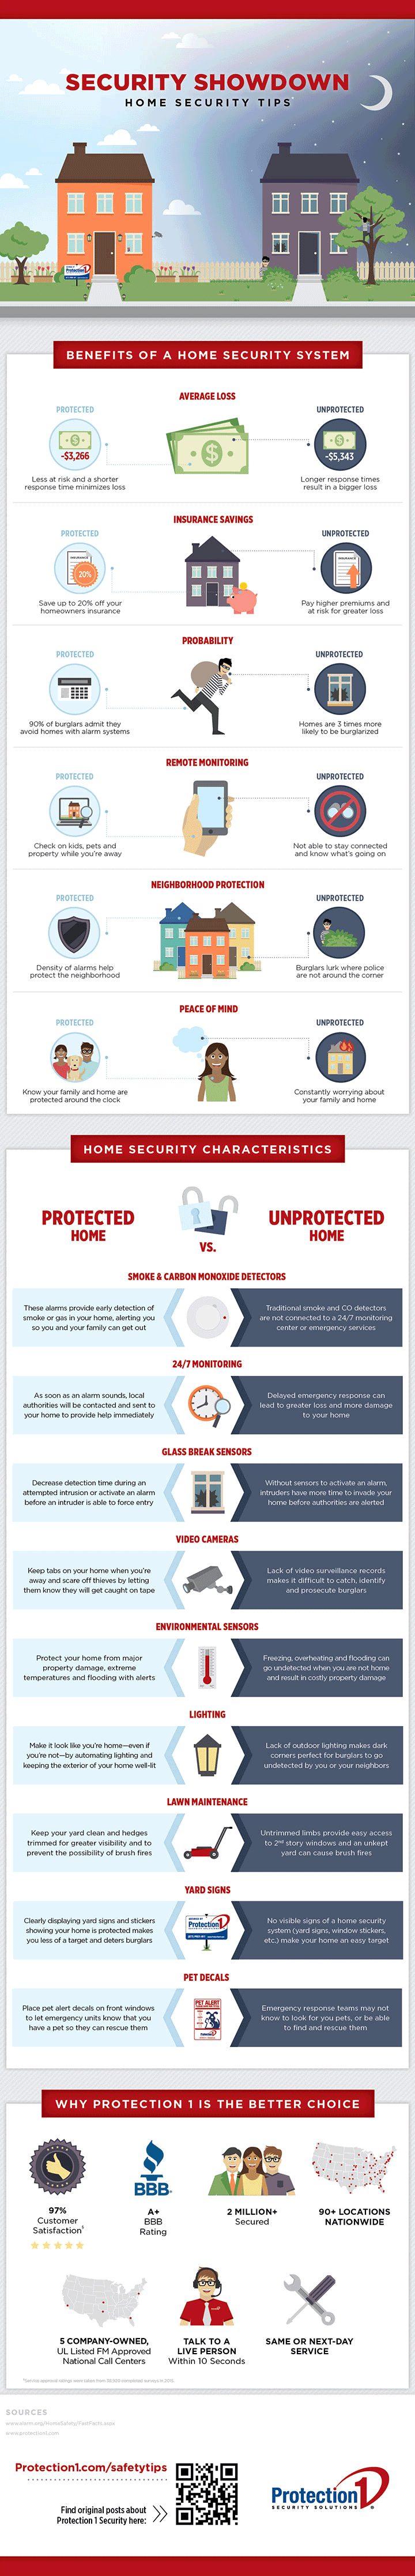 Security Showdown: Home Security Tips